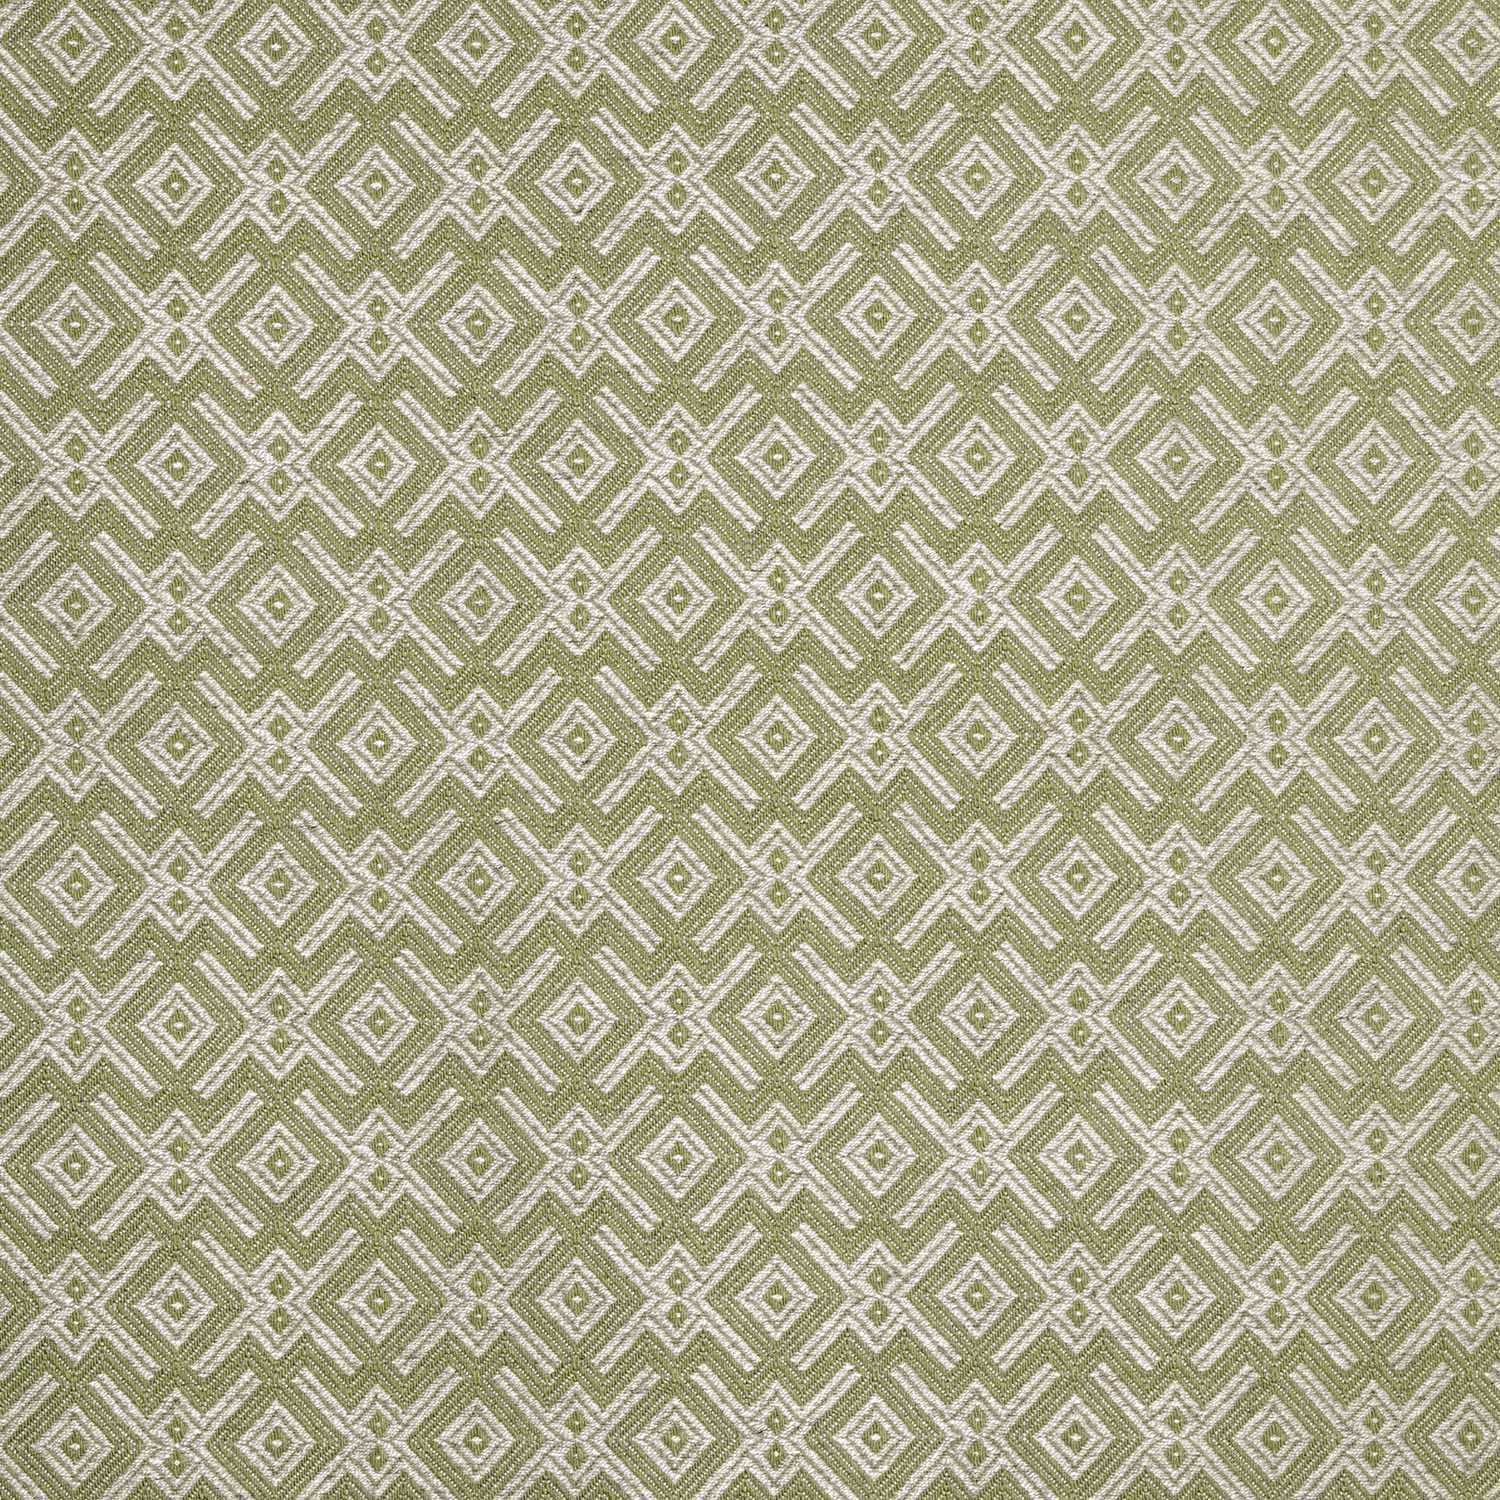 <p><strong>AMESBURY REVERSE</strong>green 1310-02<a href=/the-winthorp-collection/amersbury-reverse-green-1310-02>More →</a></p>